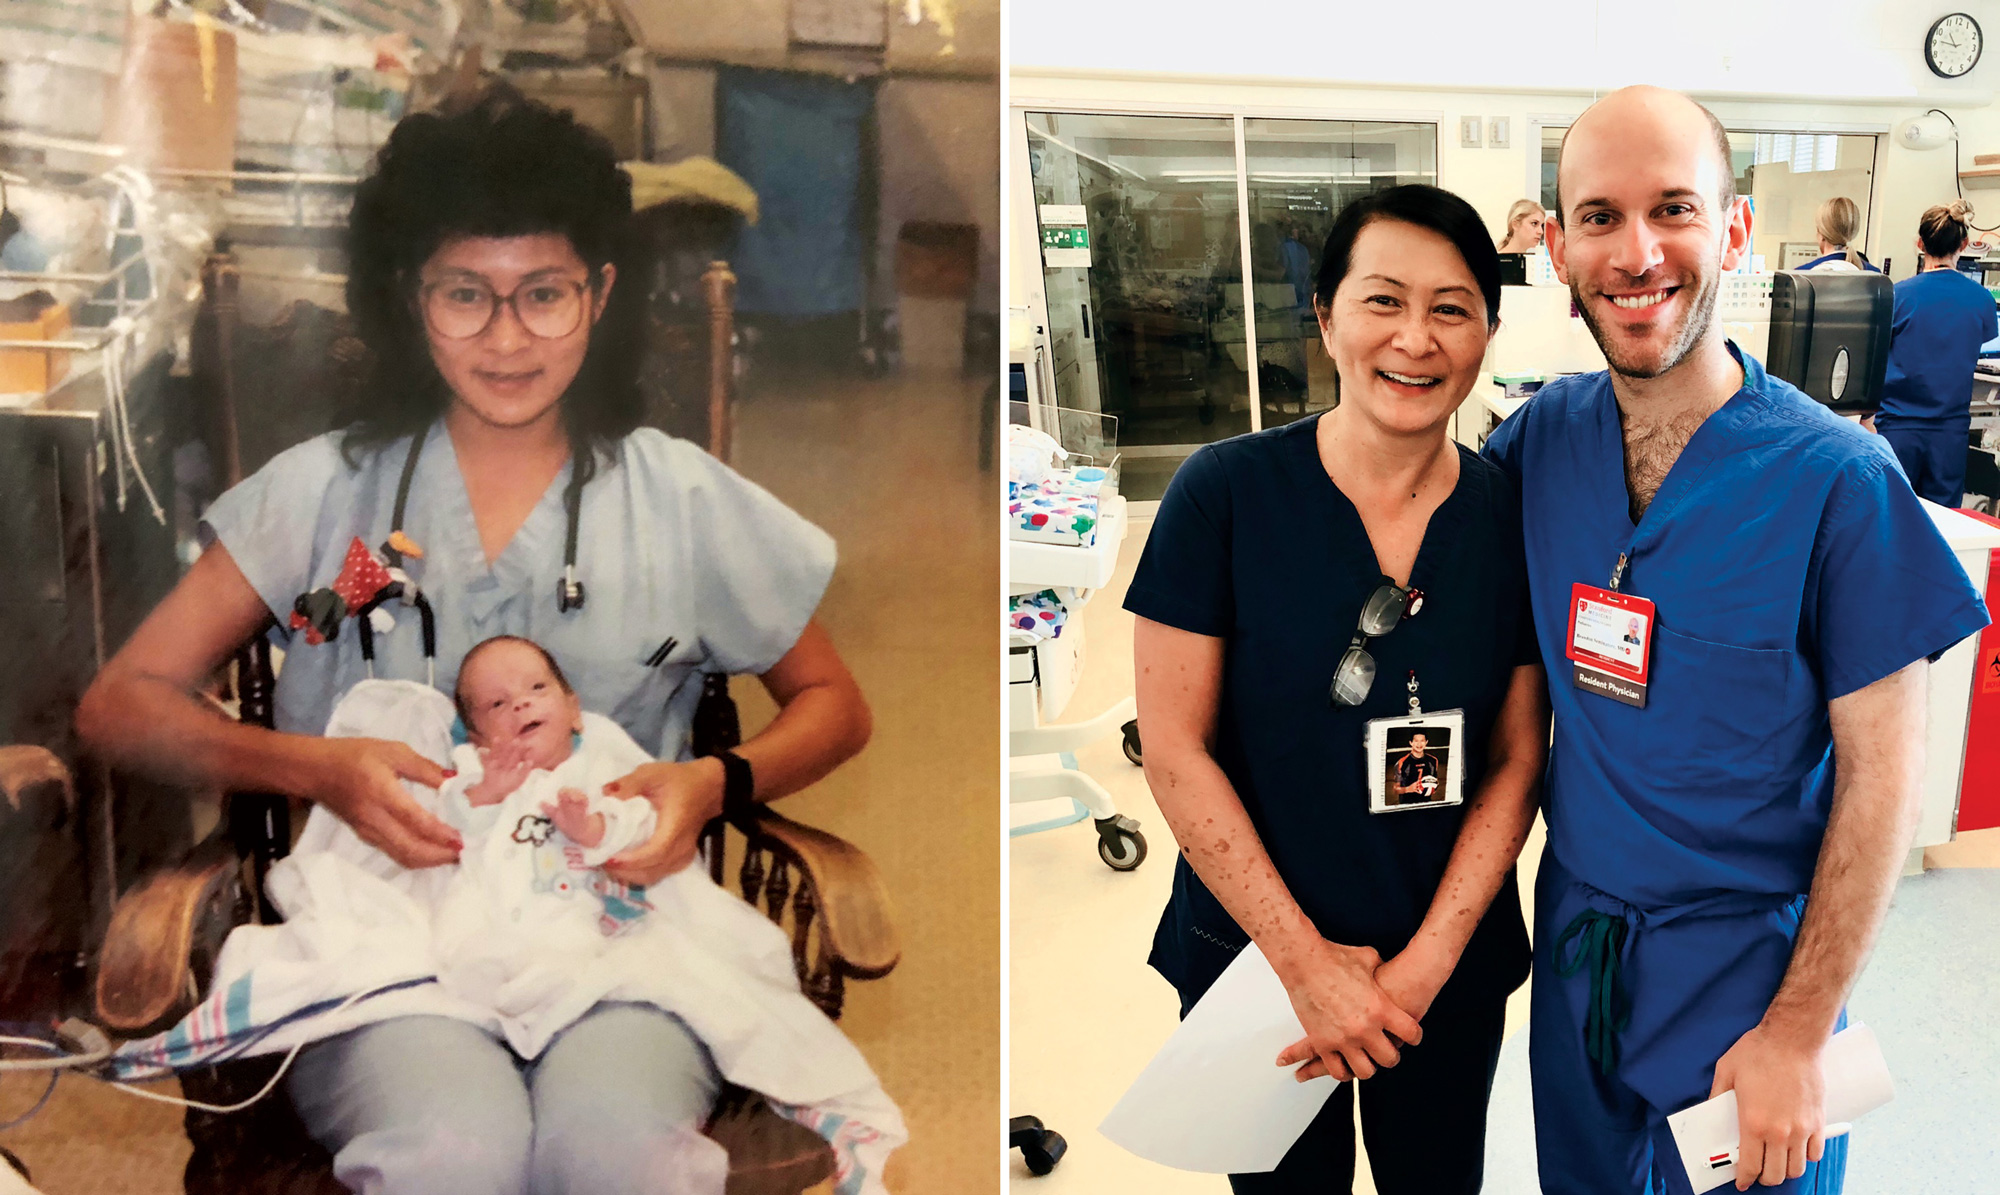 28 Years Later, NICU Nurse and Former Preemie Reconnect